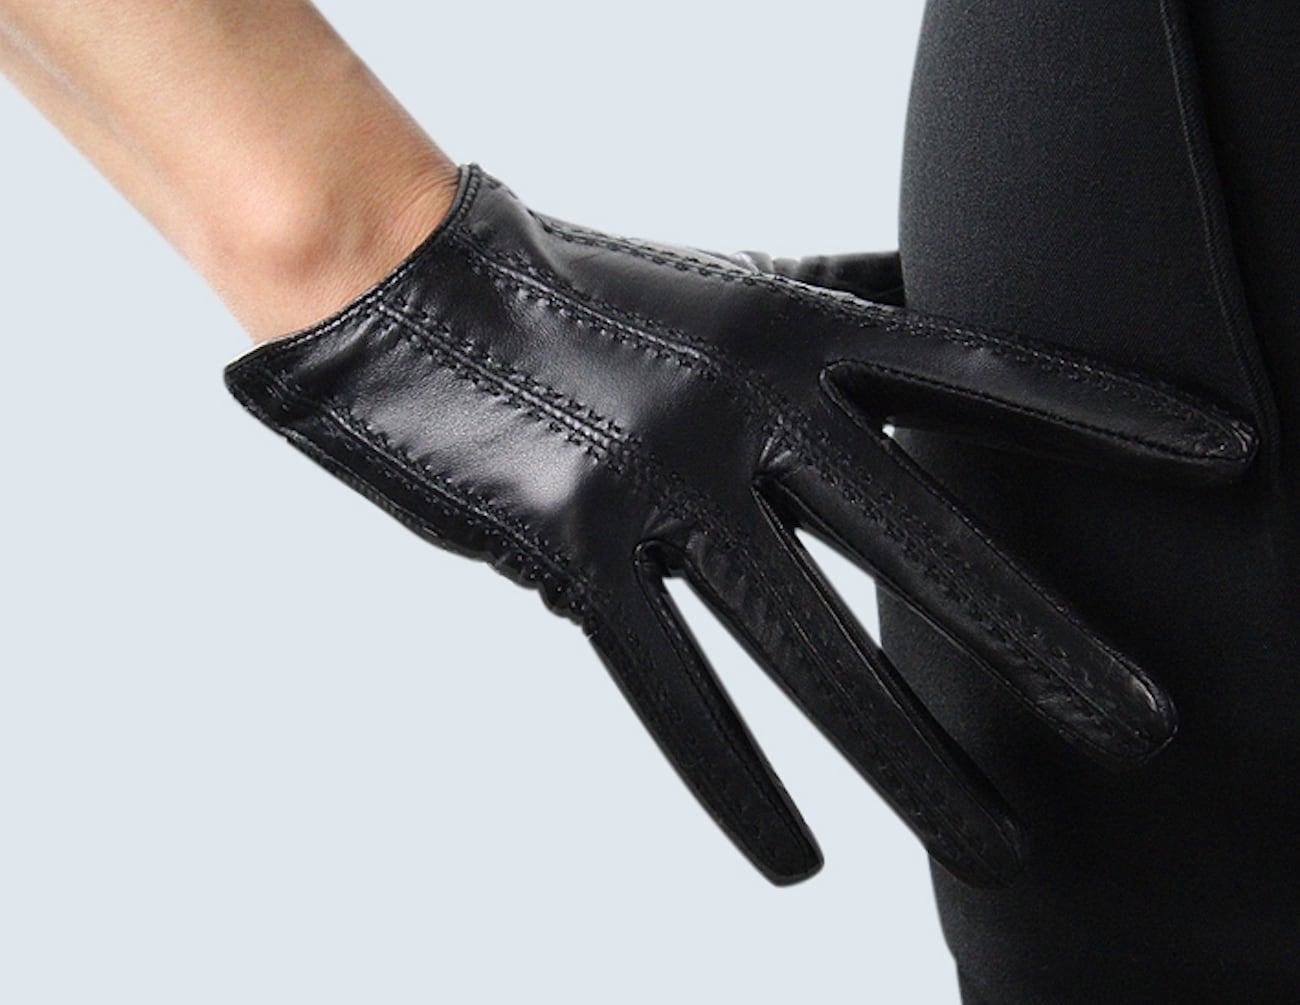 LETEO Affordable & Luxurious Smart Gloves